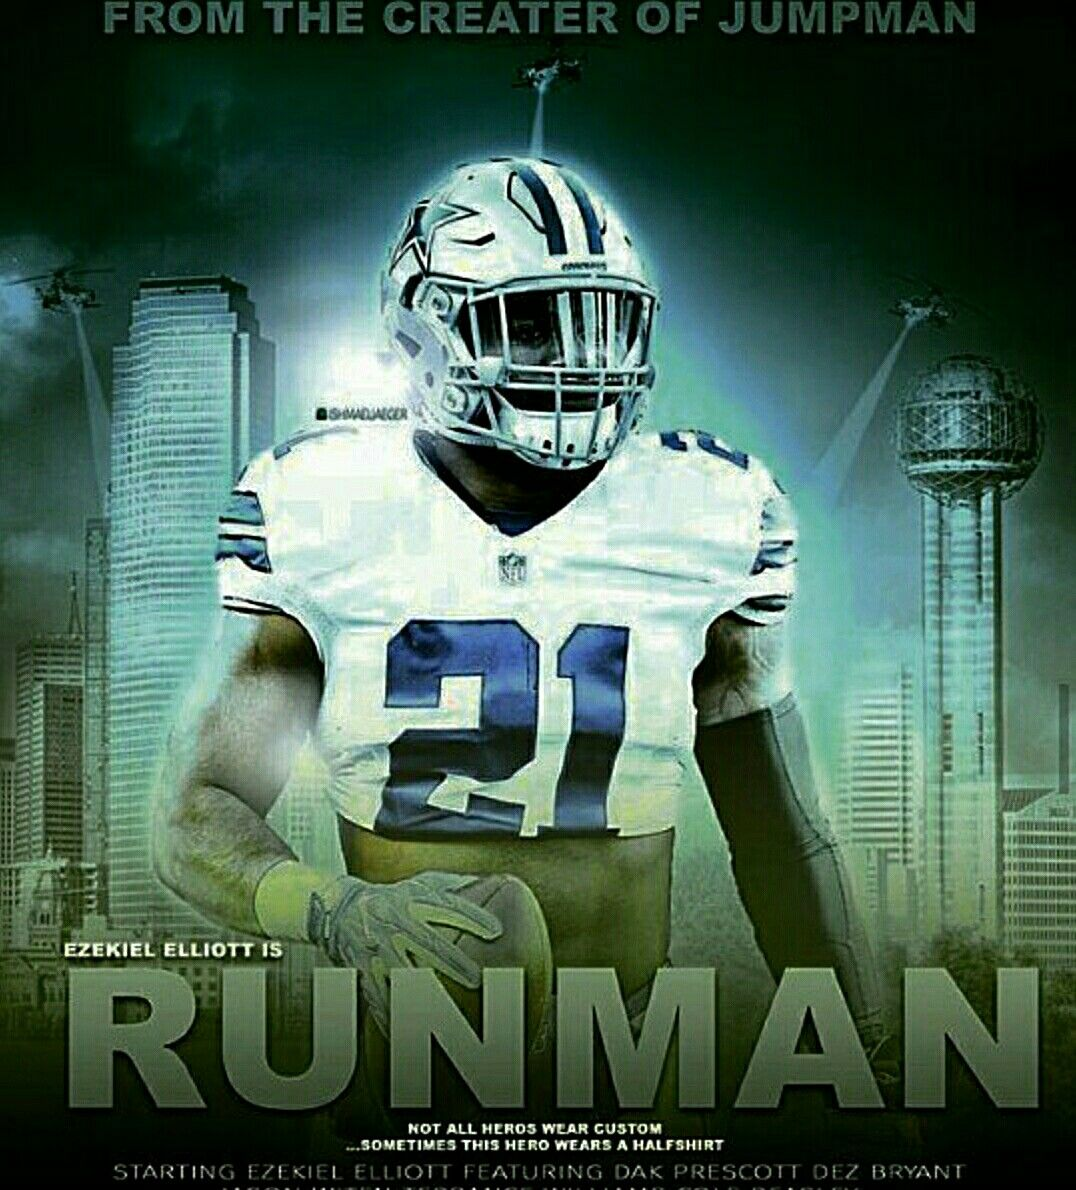 Dallas Cowboys Quotes Ha Runman Runman Runman Dallas Cowboys Dc4L Eze Ezekiel